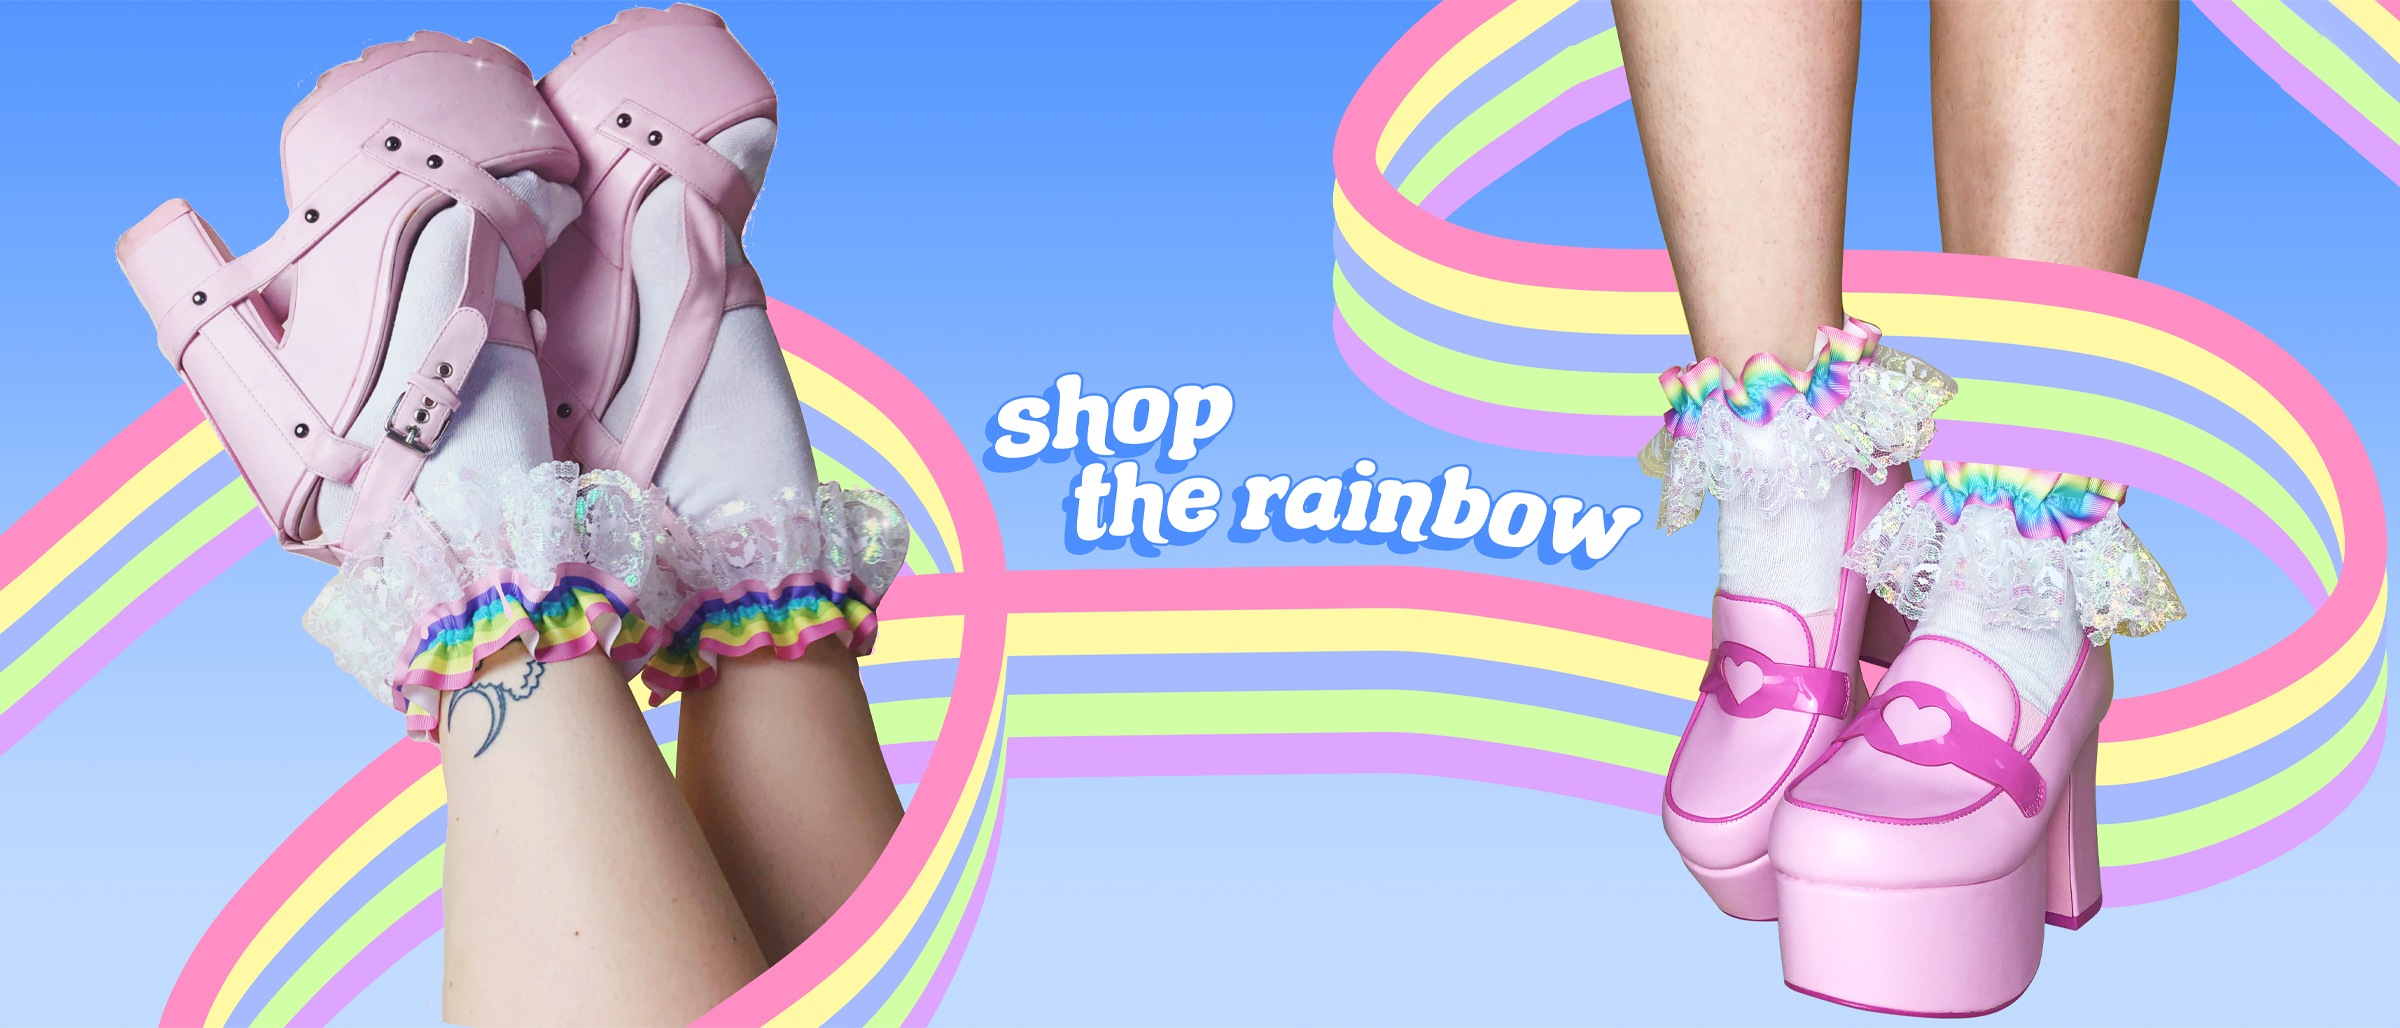 cute-rainbow-pastel-socks-kawaii-cute-iridescent-shimmer-mobile